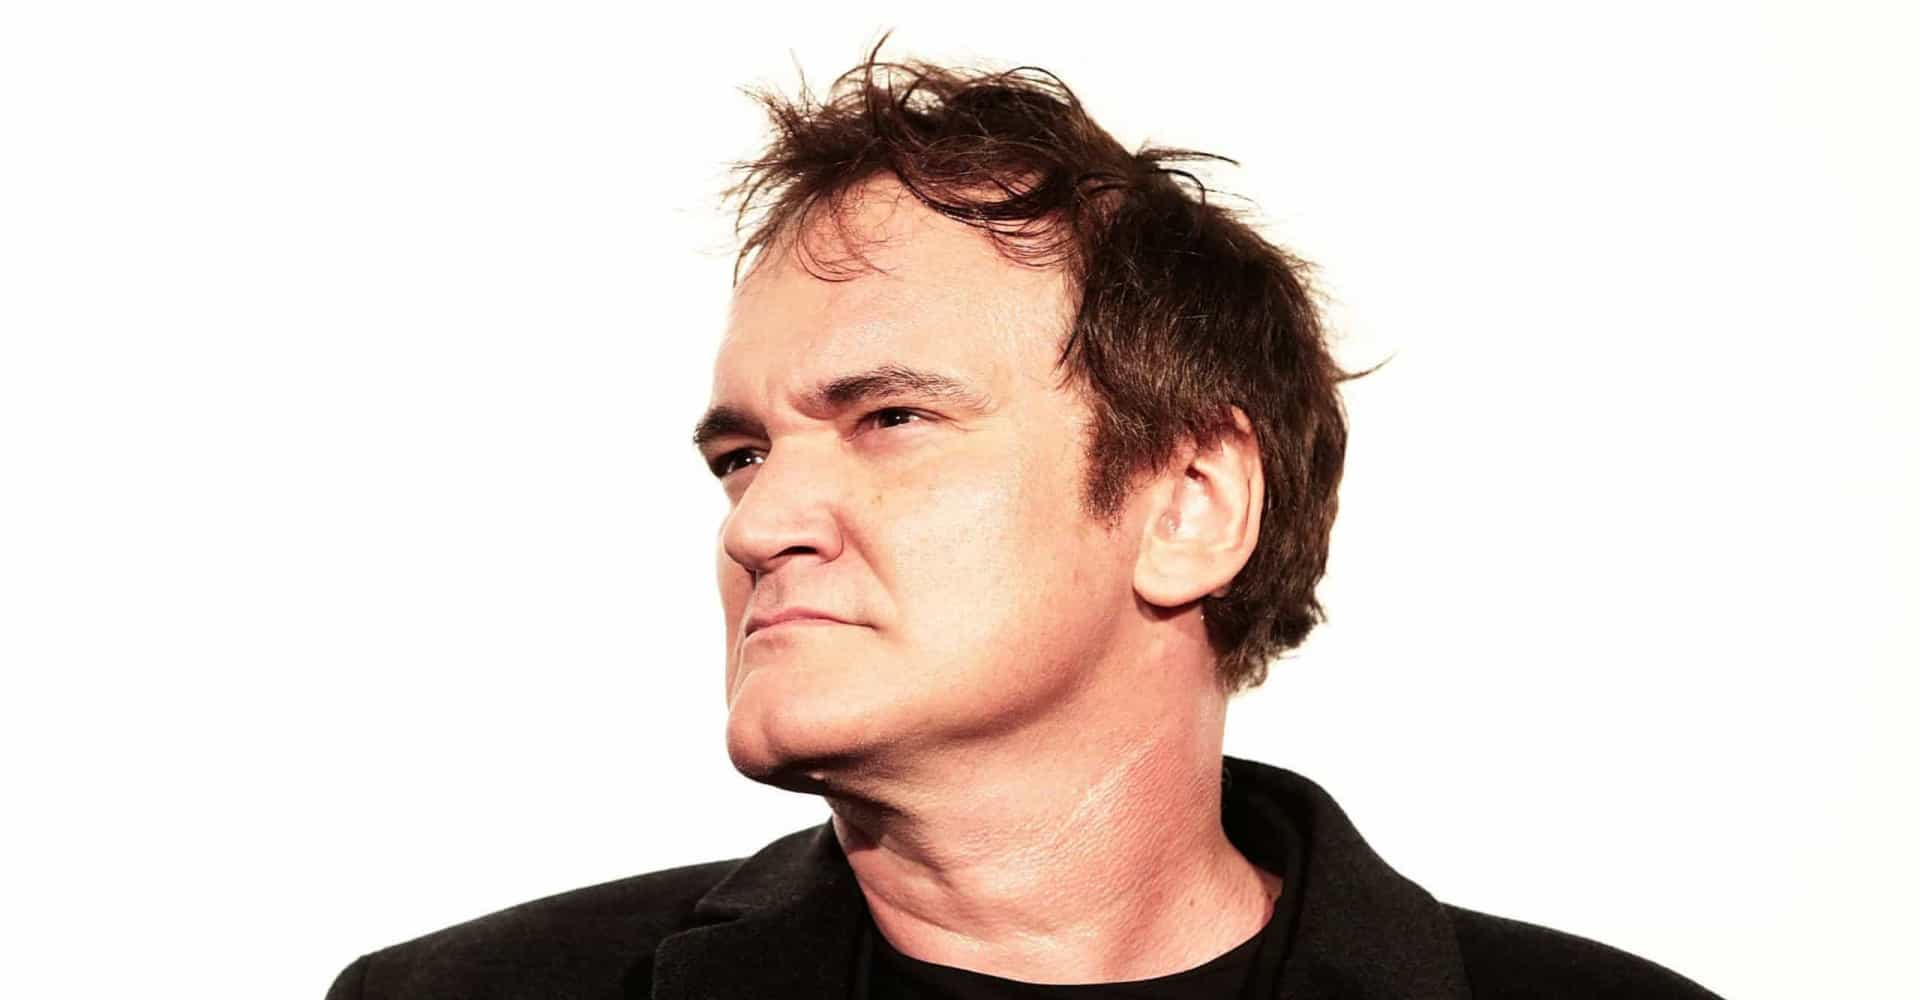 Quentin Tarantino's craziest quotes and controversies